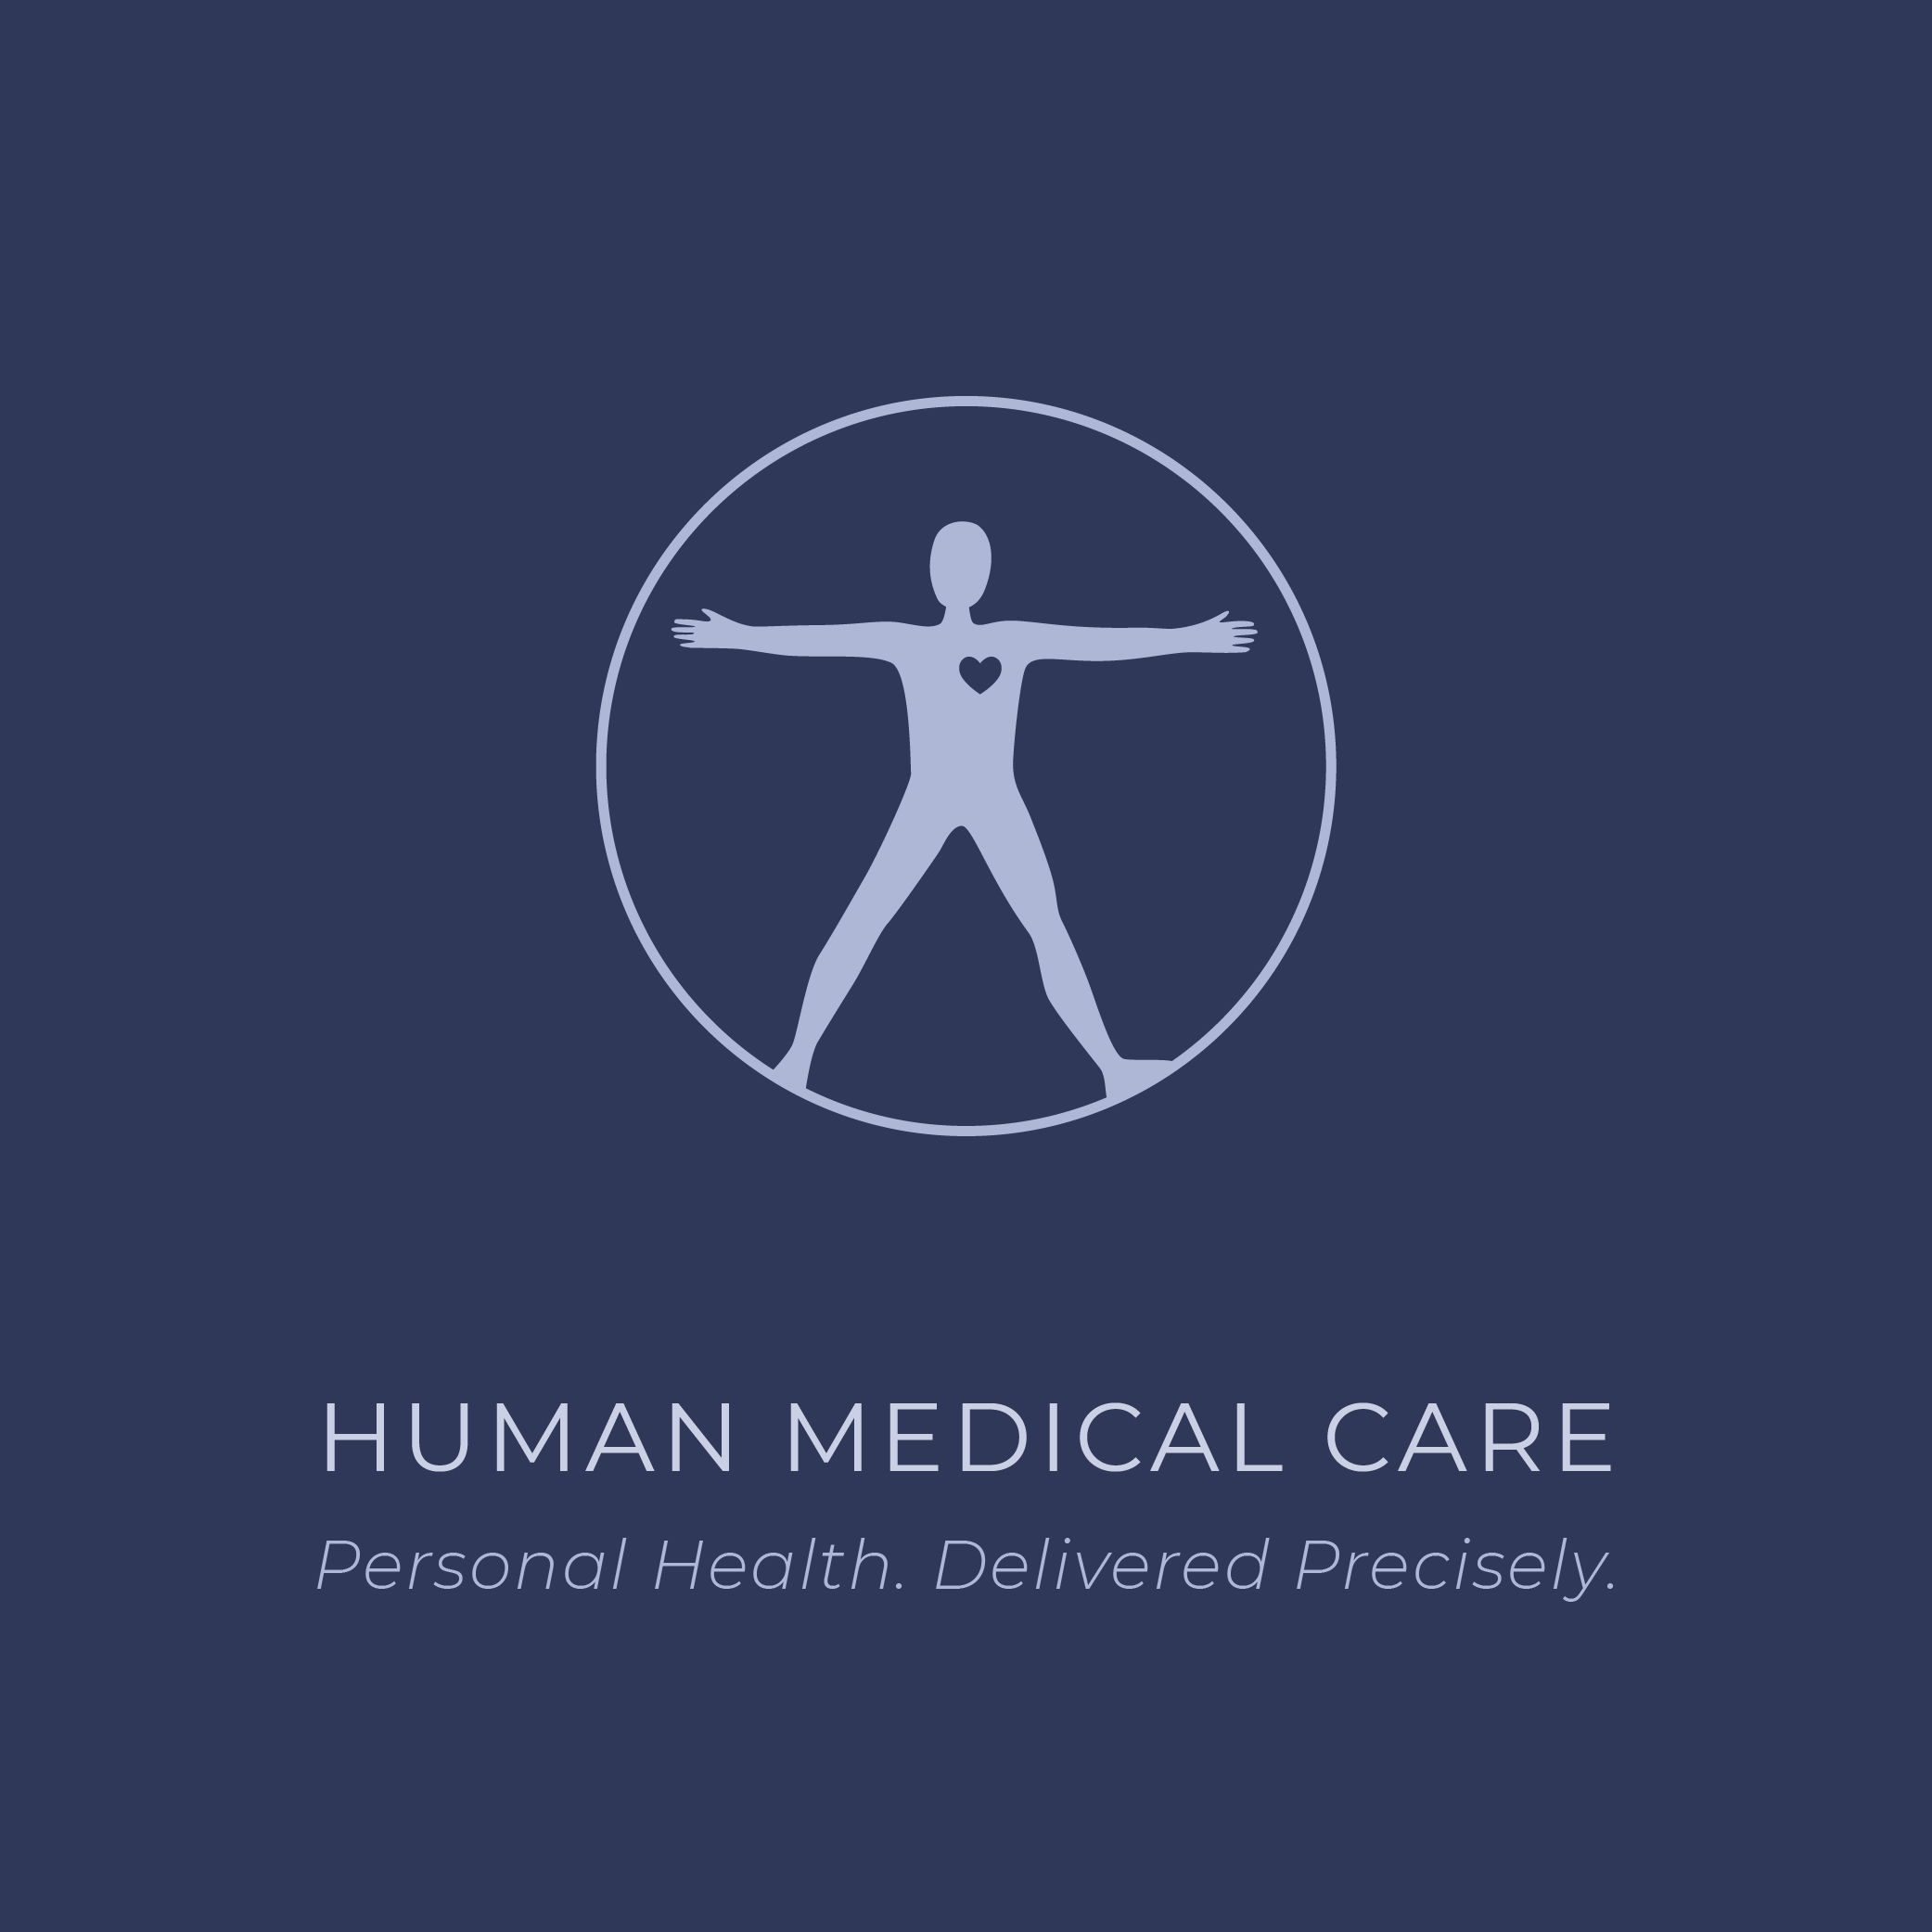 LOGO HUMAN MEDICAL CARE FINAL copy-10.jpg